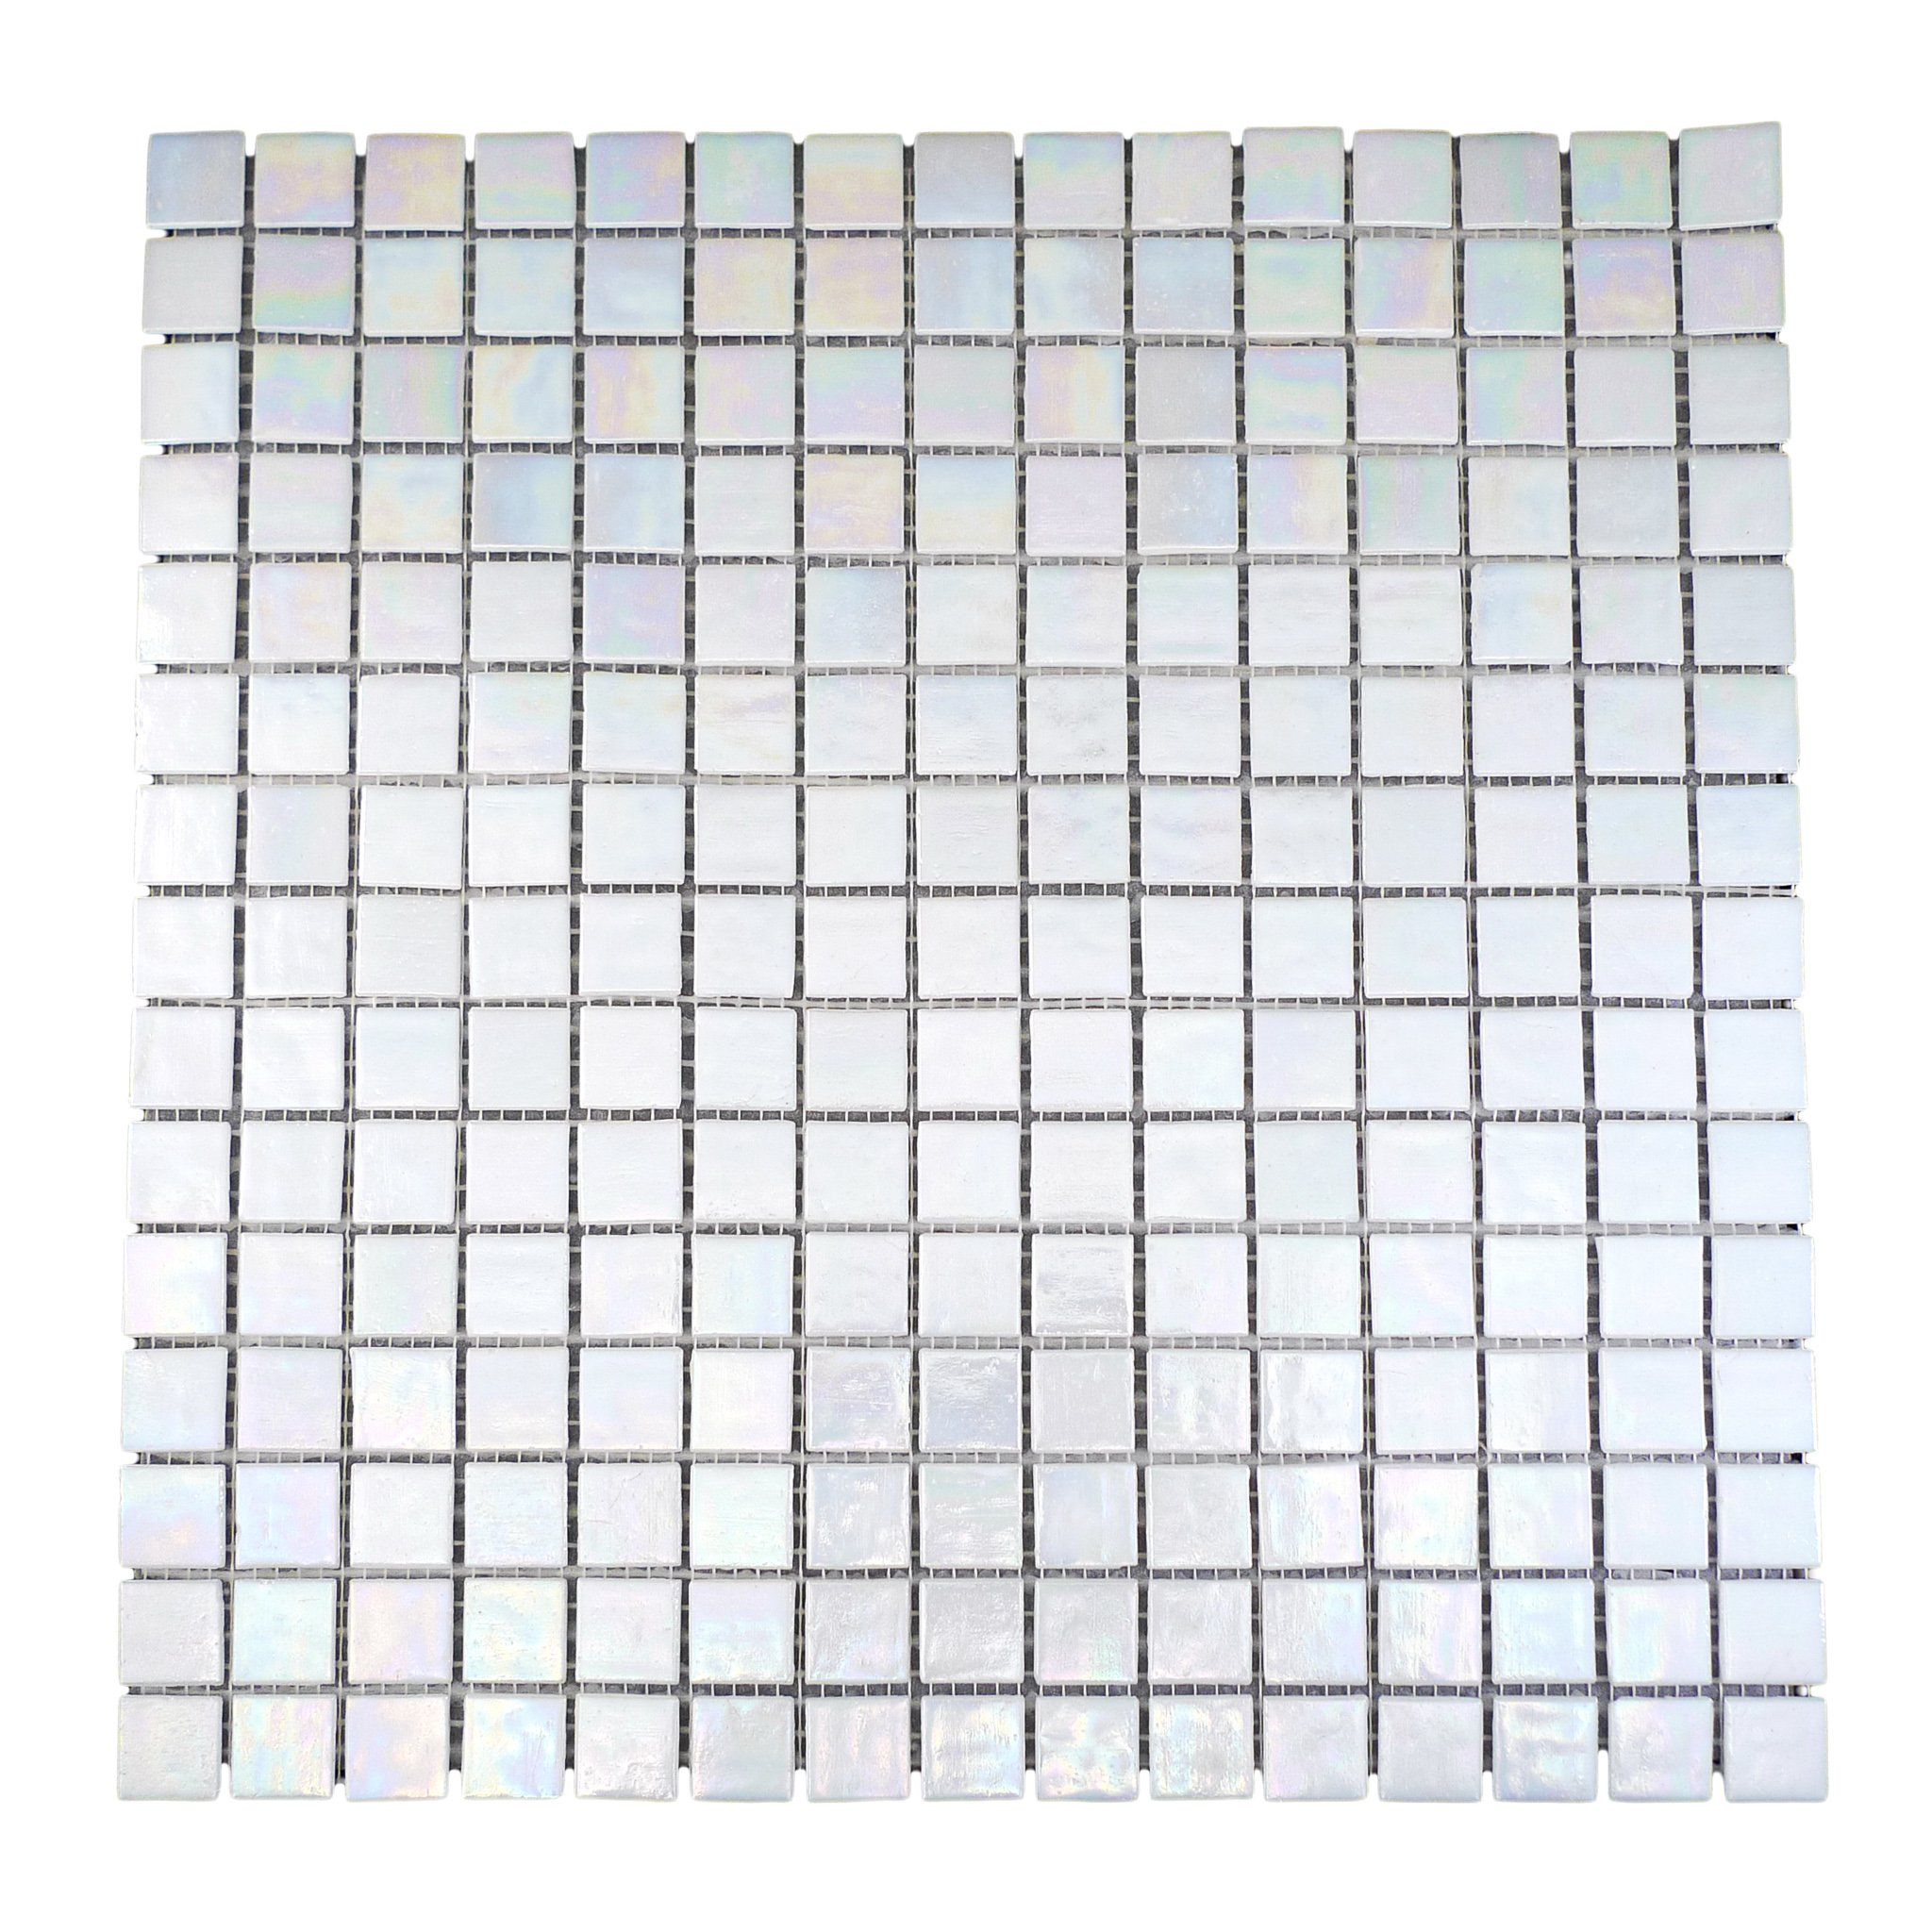 URBN Contemporary Pearl White Iridescent Glass Mosaic Tile for Kitchen and Bath - One Box of 20 Sheets (23 SQ FT)